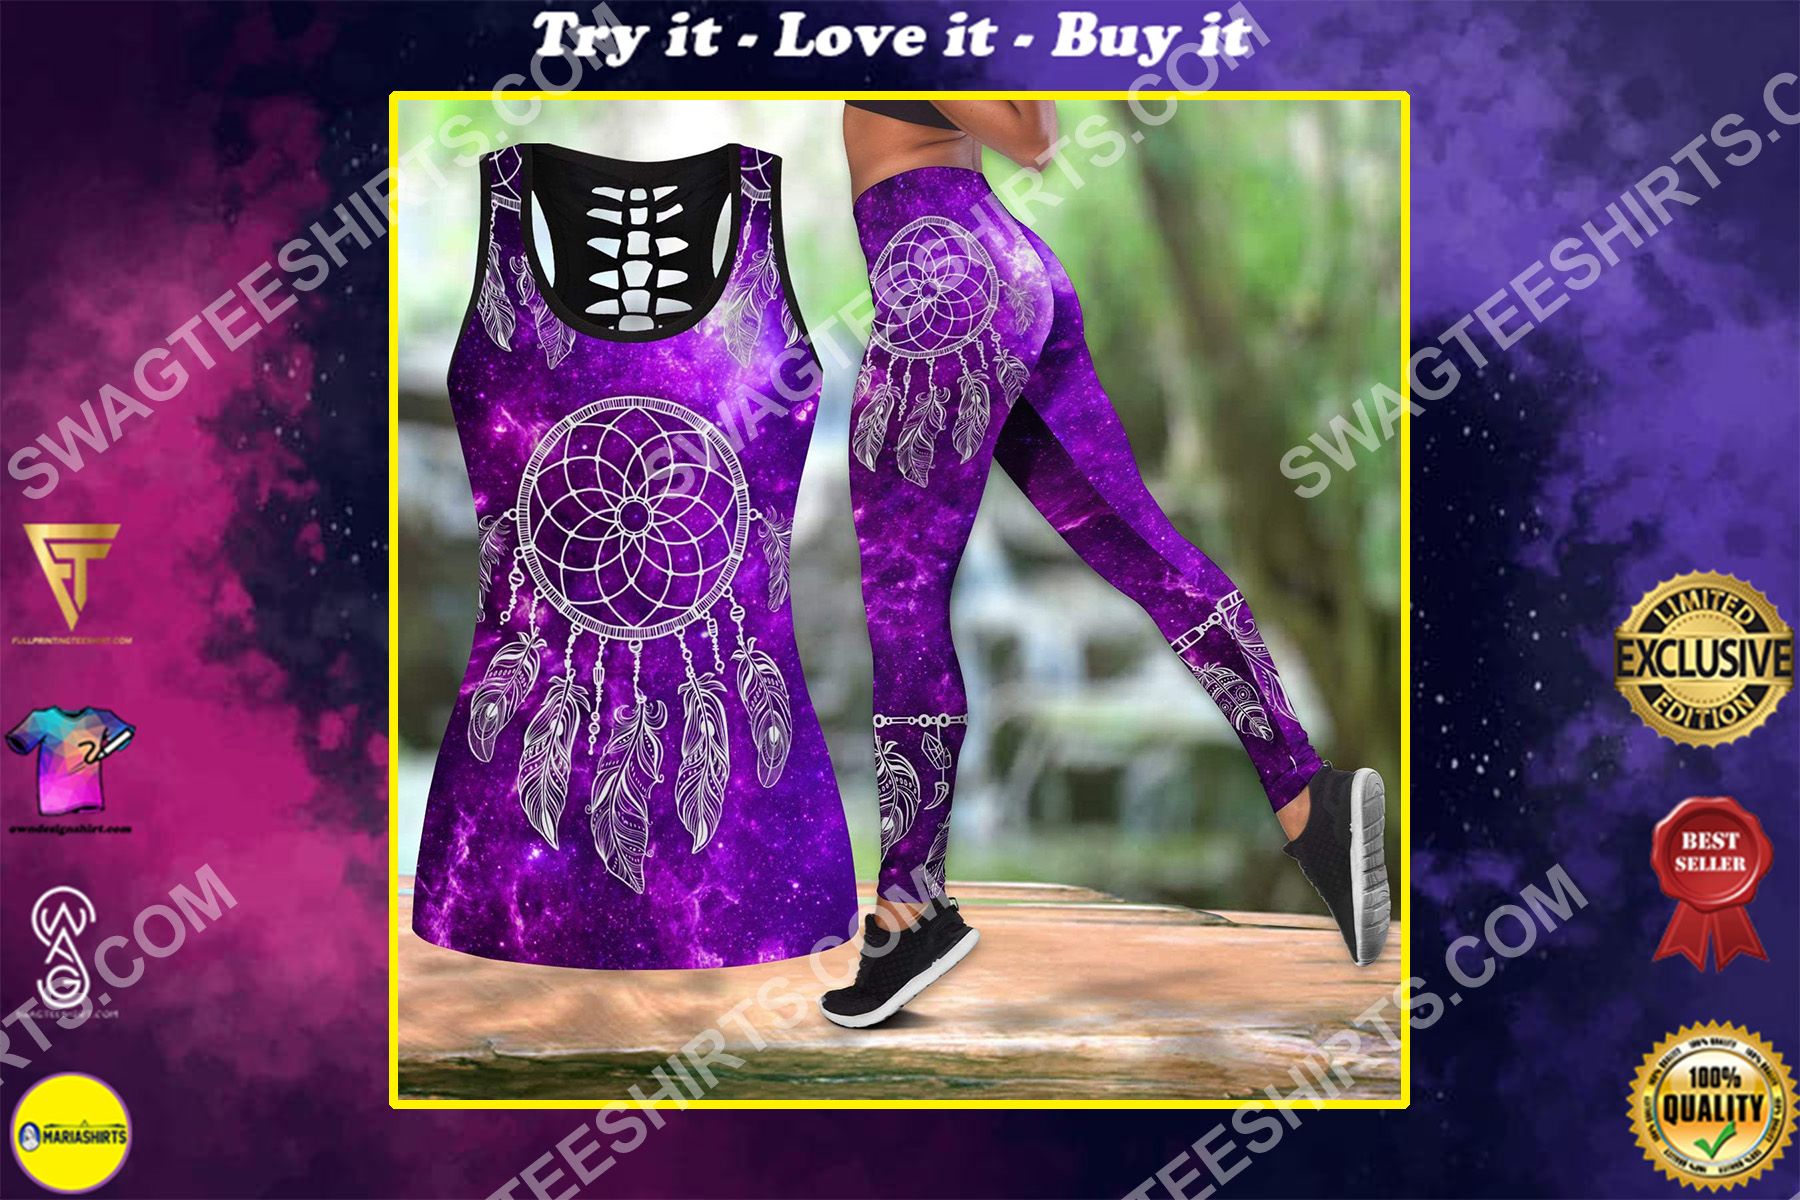 dreamcatcher galaxy purple all over printed set sports outfit